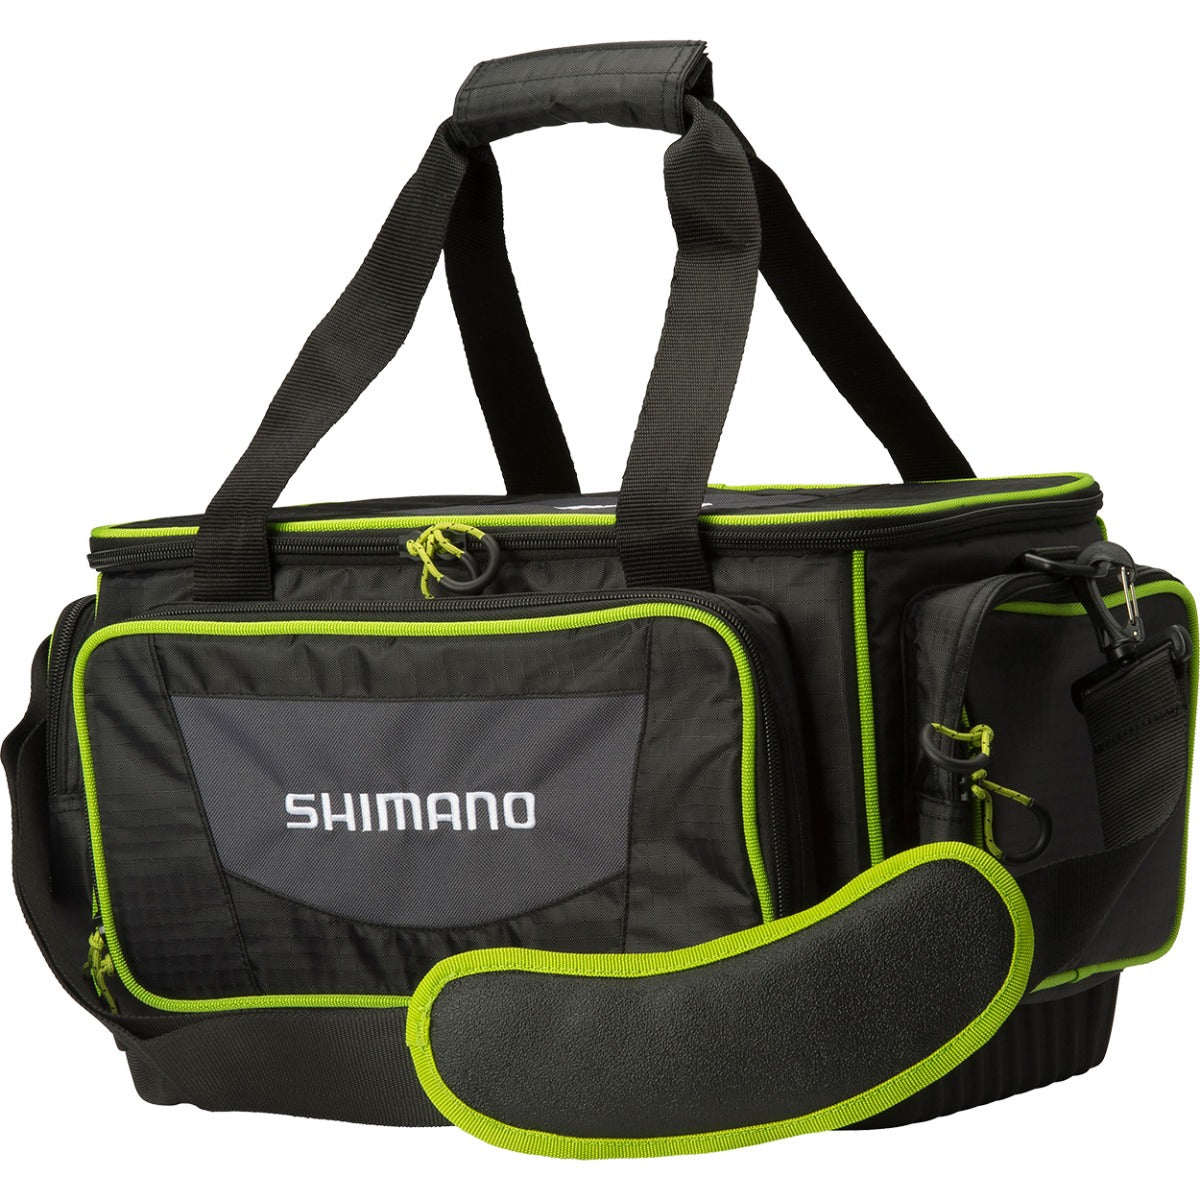 Shimano Tackle Bag with Trays